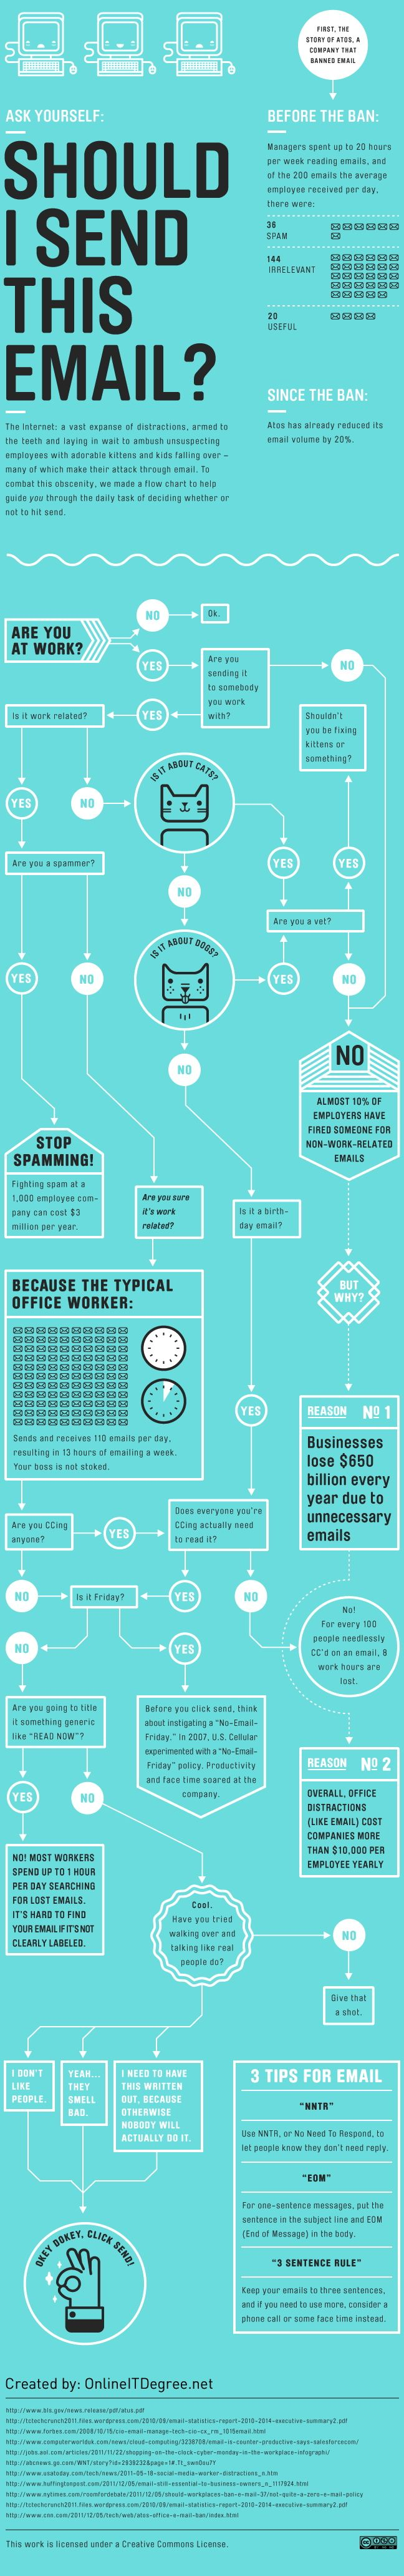 Think, Before You Email (A Decision Tree Infographic) » Copy / Paste by Peter Pappas